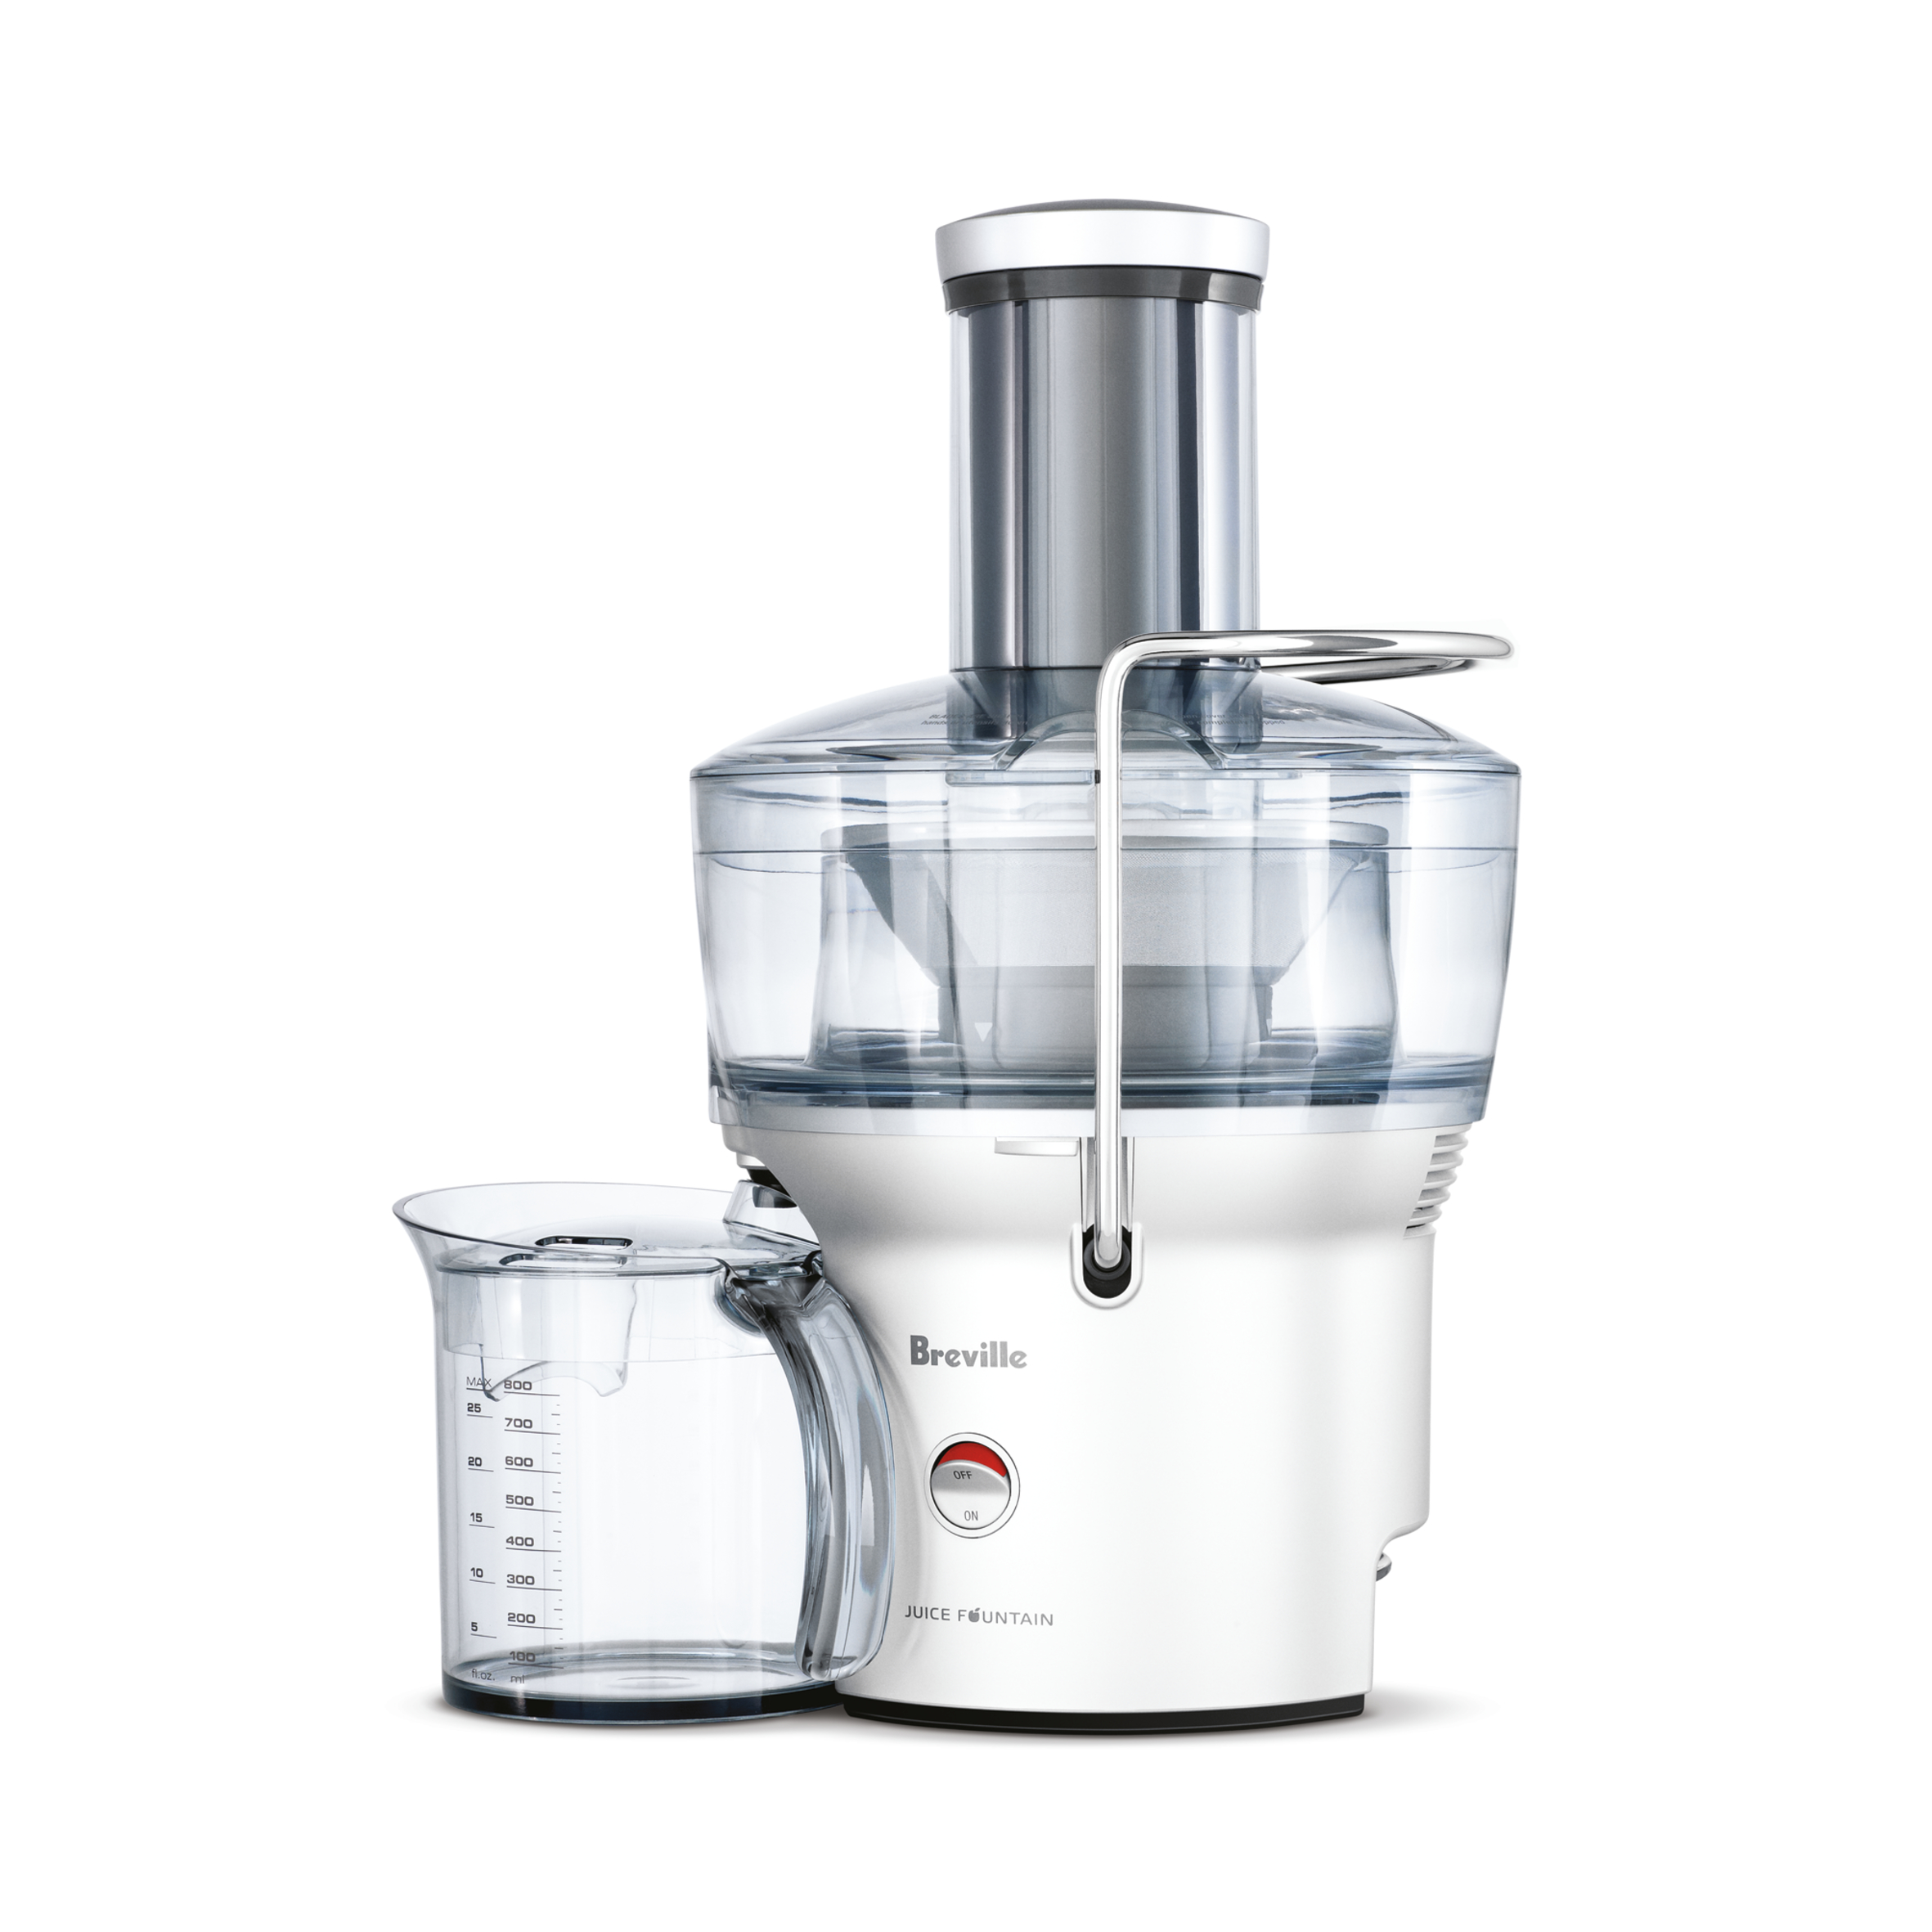 small in stature big on performance - Breville Food Processor